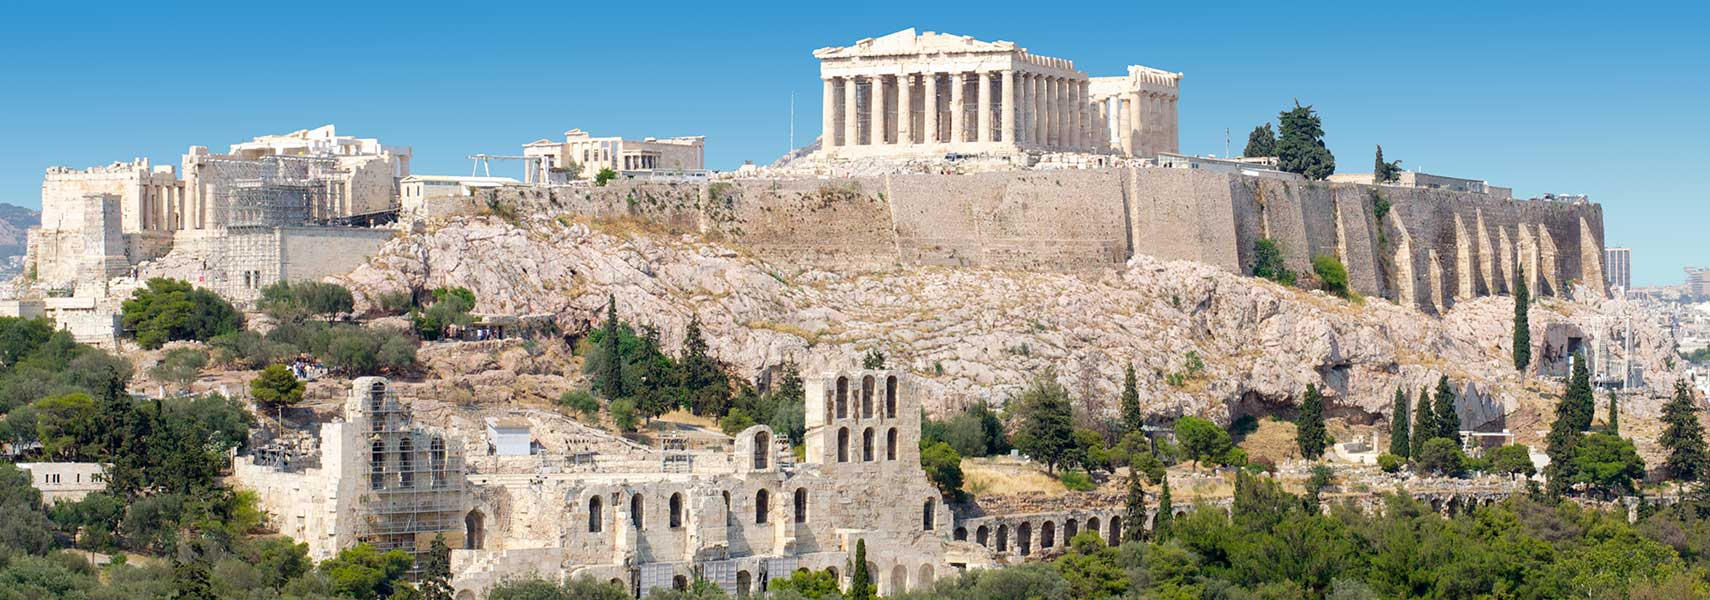 20 Buildings in Europe Every Architect must visit - Acropolis, Athens, Greece